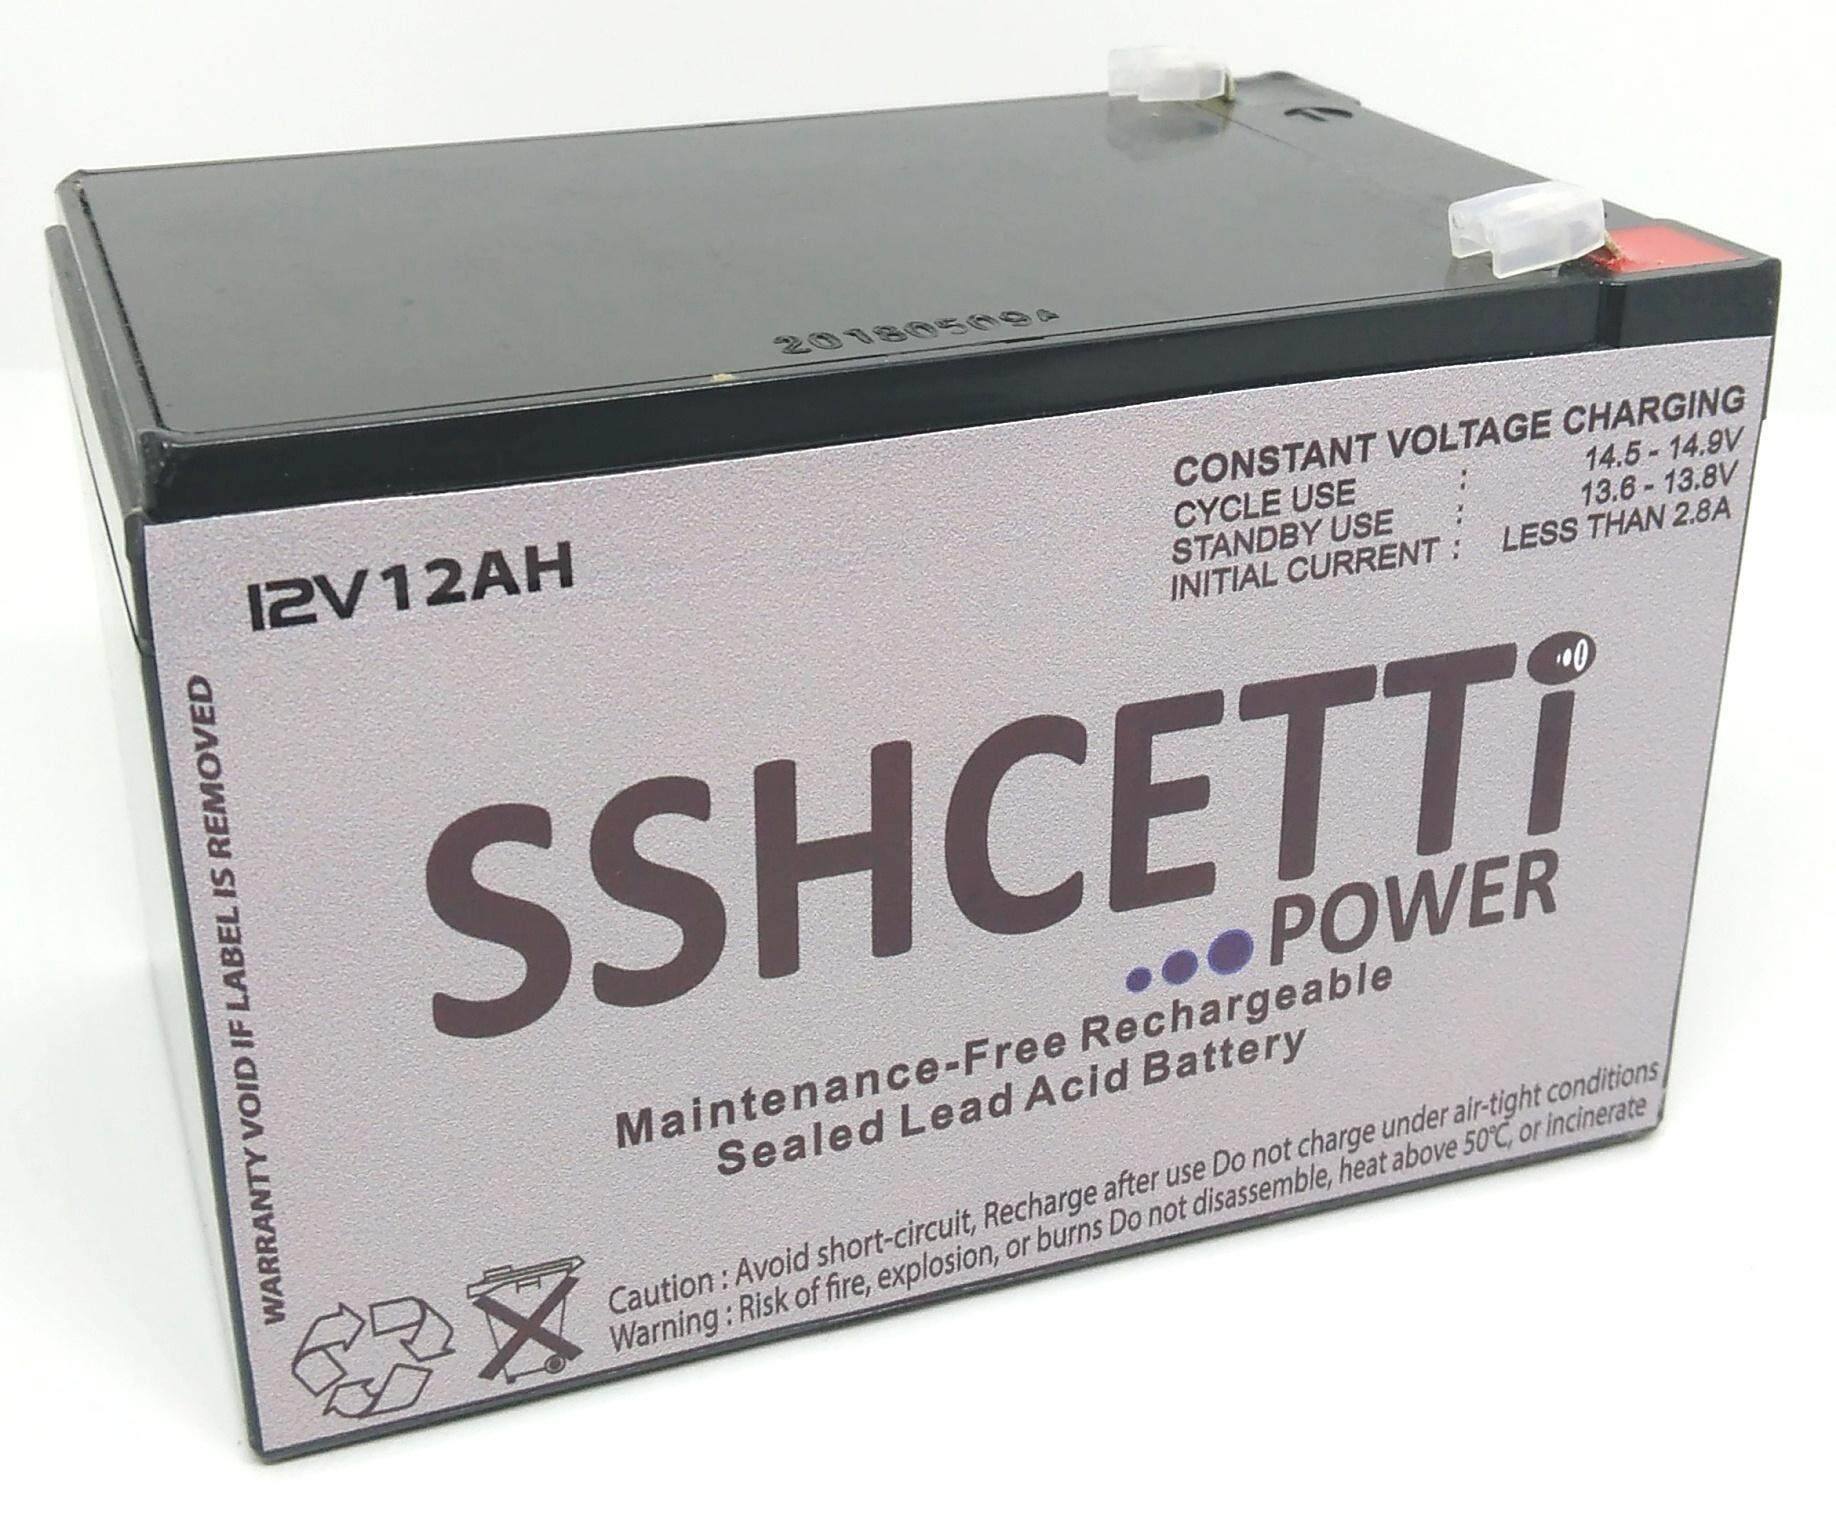 SSHCETTI 12V 12AH PREMIUM Rechargeable Sealed Lead Acid Battery For Electric Scooter/ Toys car / Bike /Solar /Alarm /Autogate Malaysia